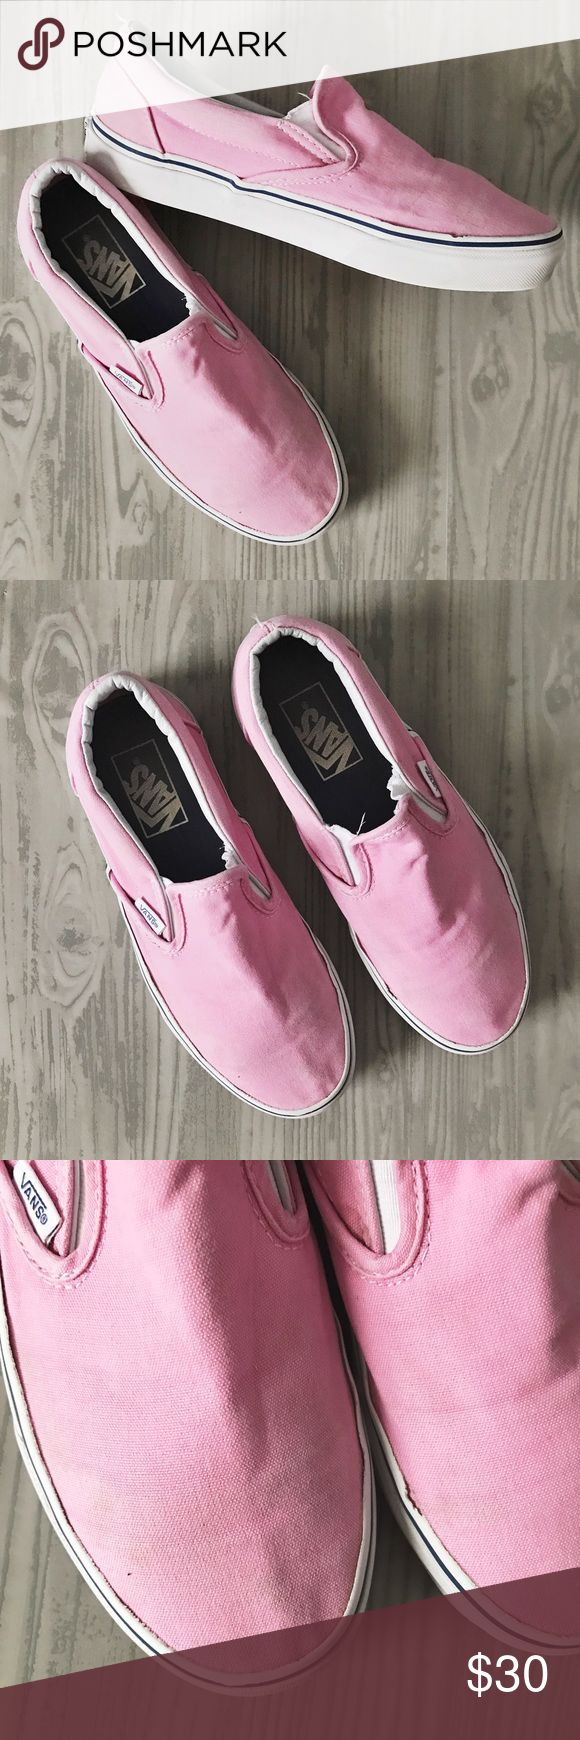 Pink Slip-On Vans Gently used & so cute! Size 7.5. Has a few faint marks on the fabric of the shoes (shown in the third photo,) that could easily be washed out. Bundle for a discount ✨ Vans Shoes Flats & Loafers